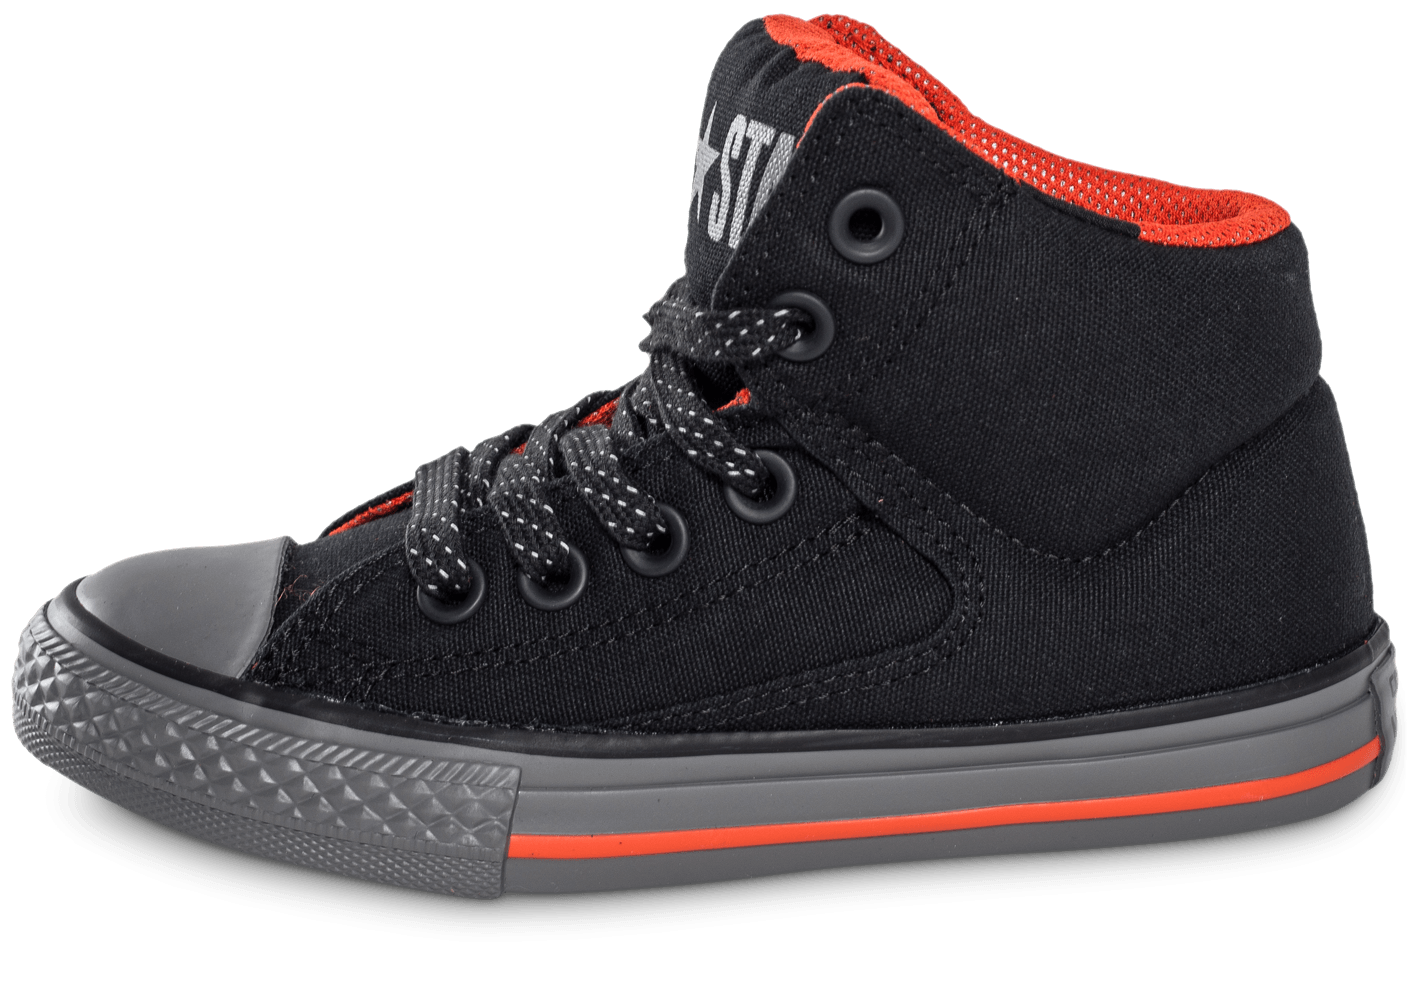 converse chuck taylor all star street mid enfant noire chaussures chaussures chausport. Black Bedroom Furniture Sets. Home Design Ideas